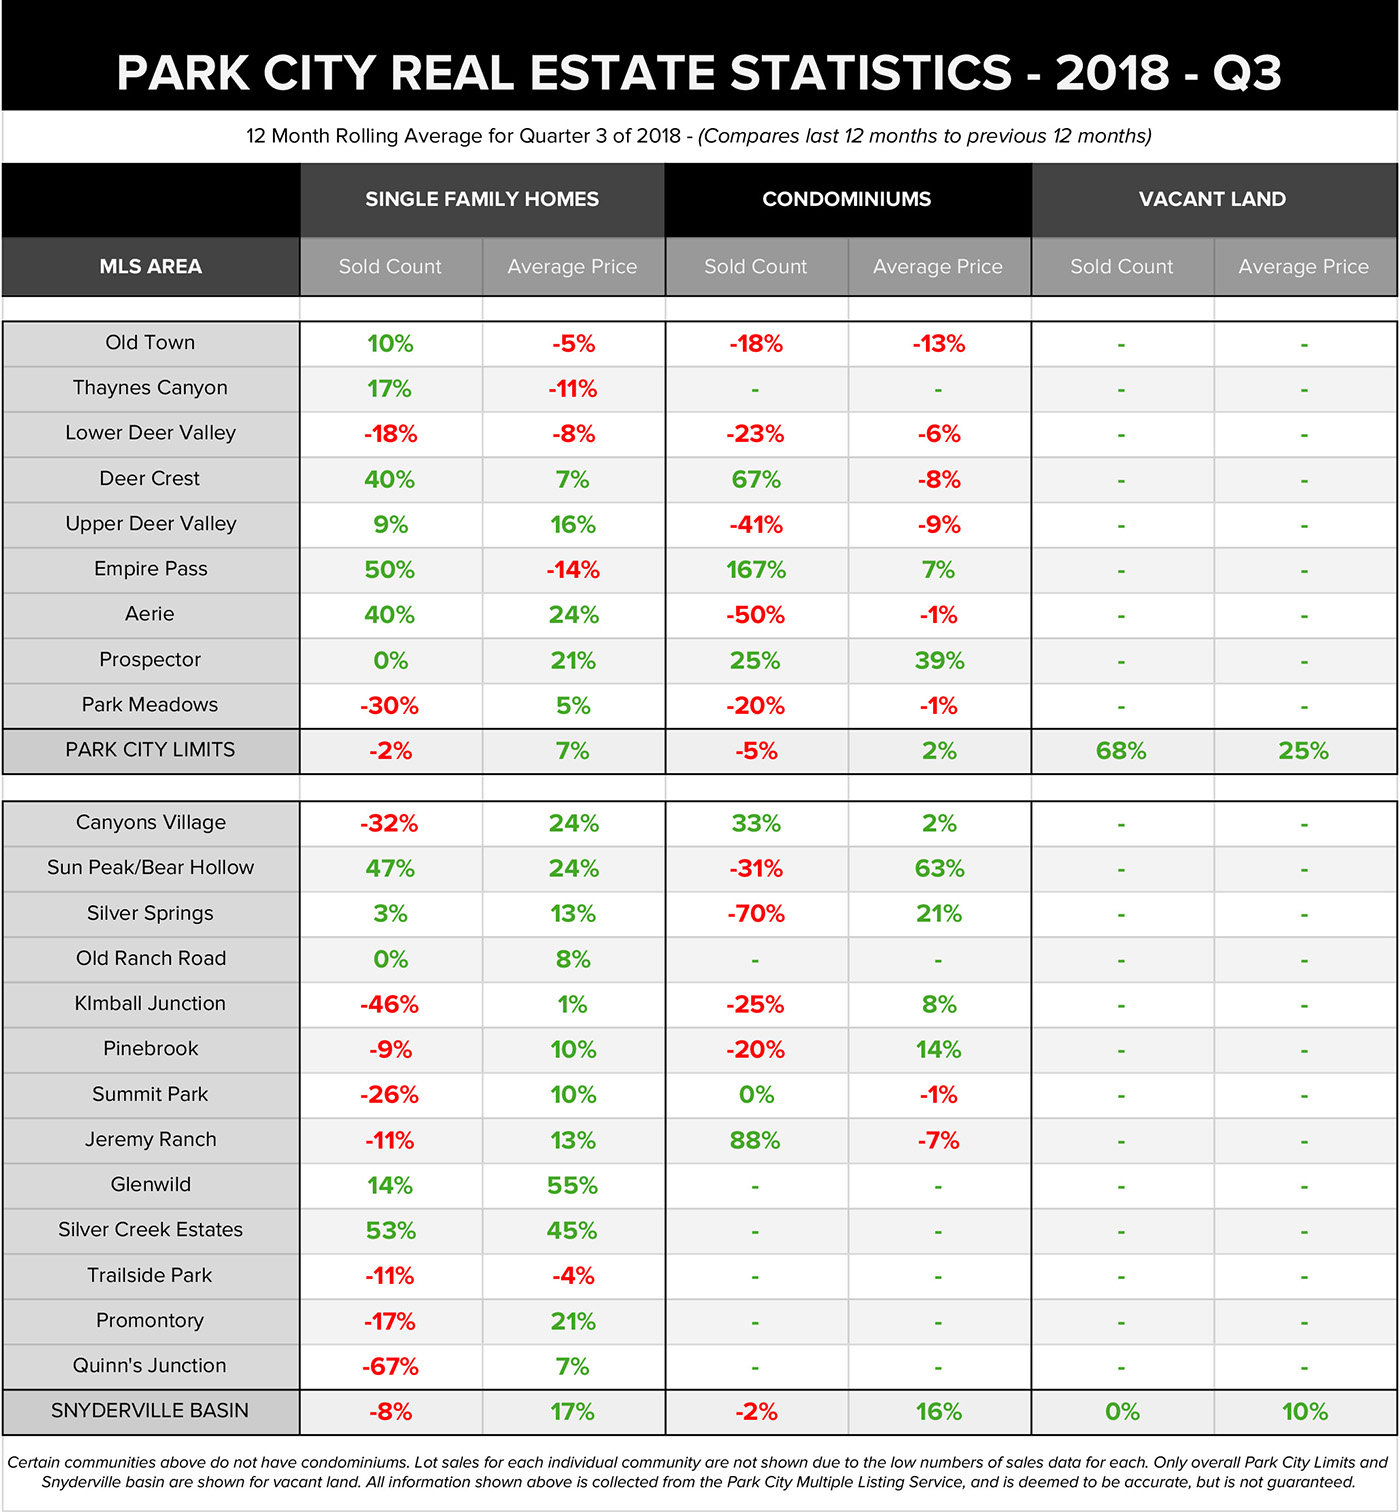 park city real estate statistics for Q3 2018